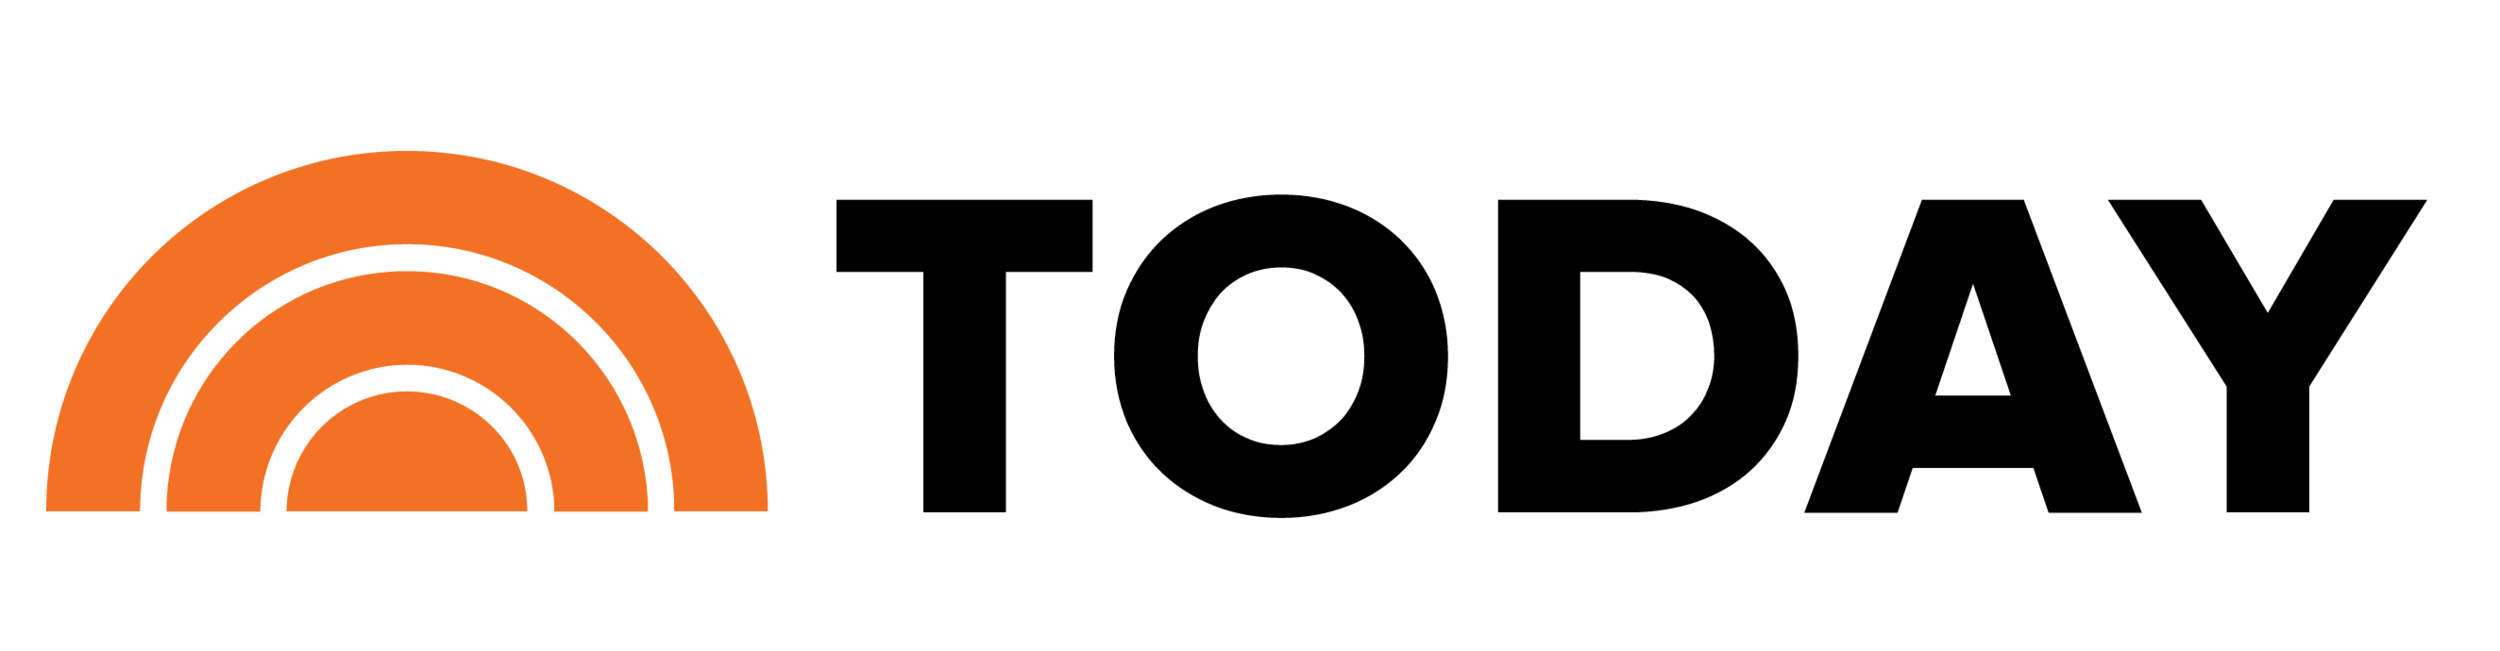 Today_show_logo.png